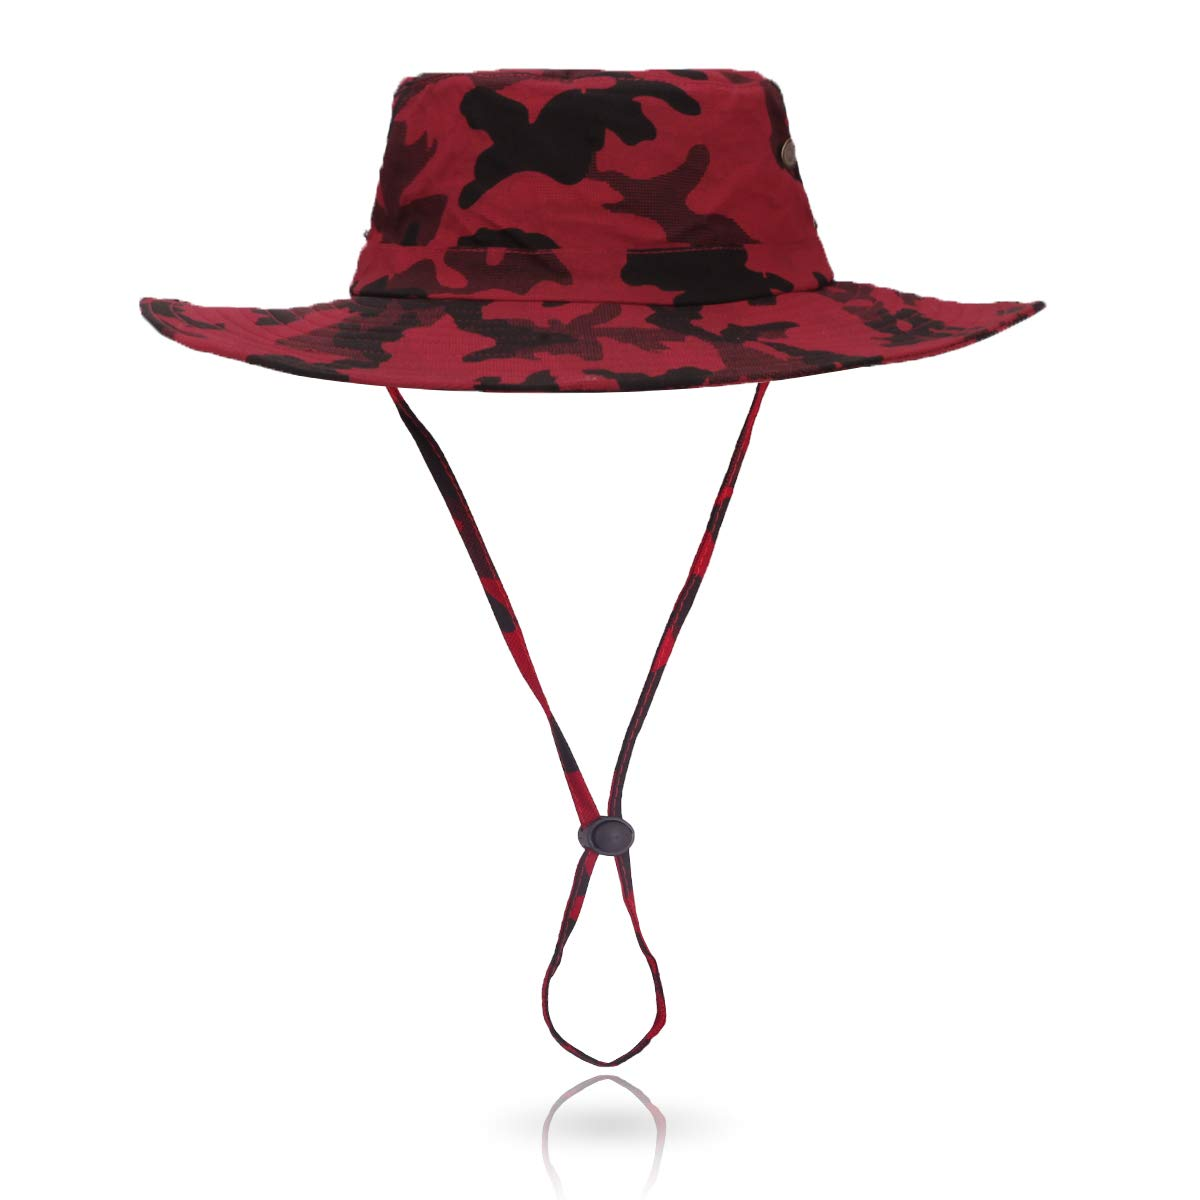 Jane Shine Outdoor Sun Hat Quick-Dry Breathable Mesh Hat Camping Cap Red Camouflage by Jane Shine